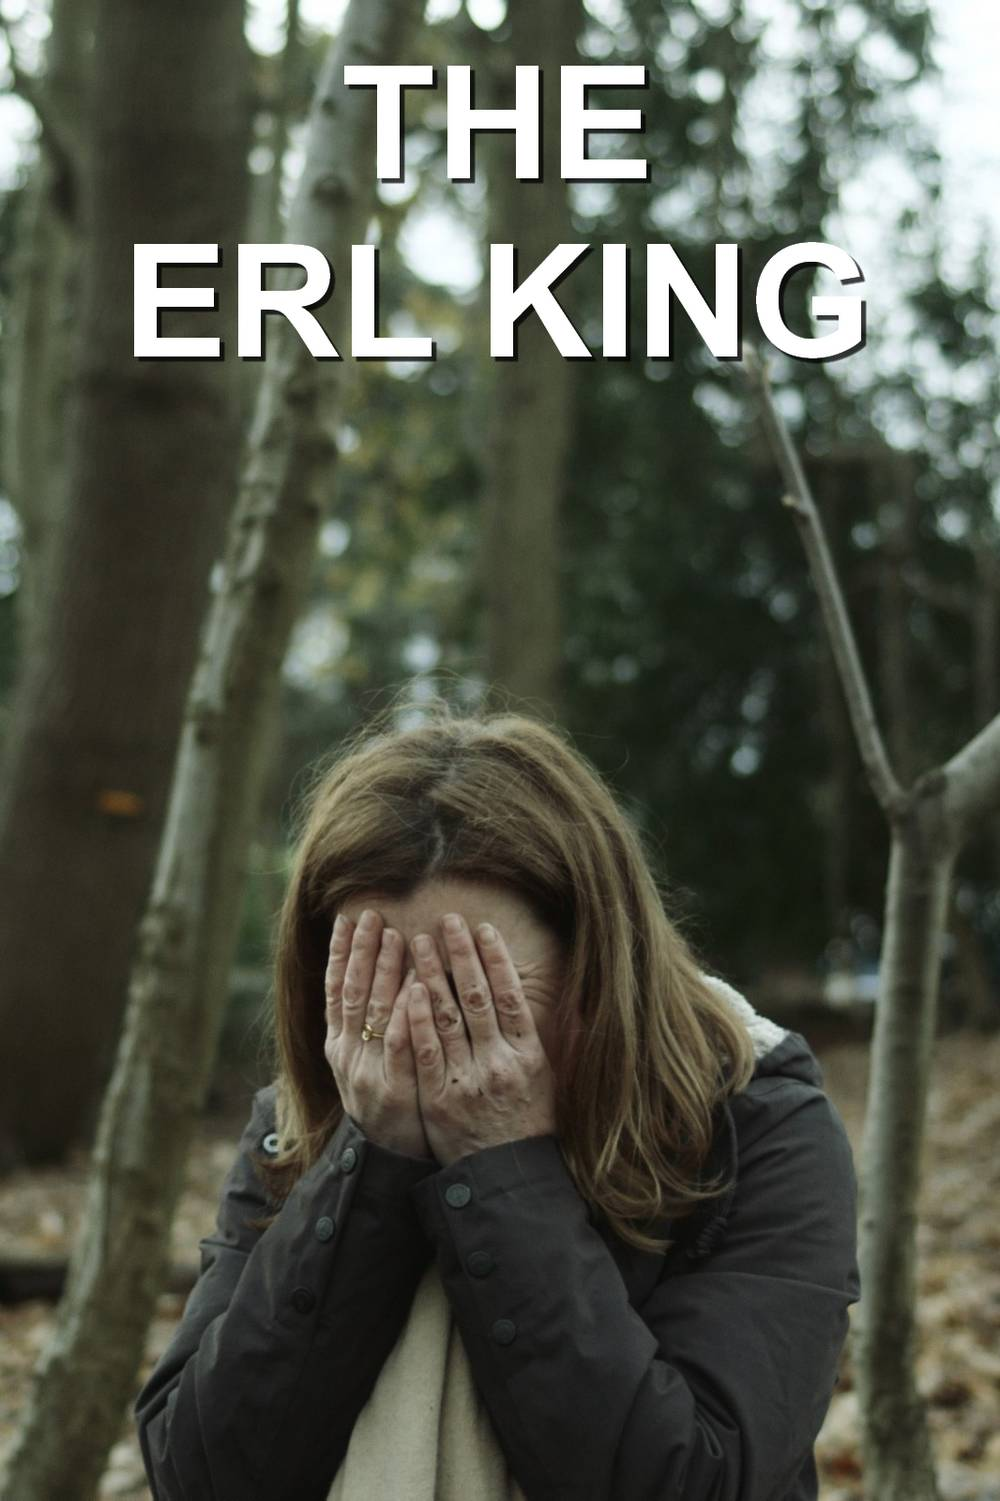 The Erl King poster